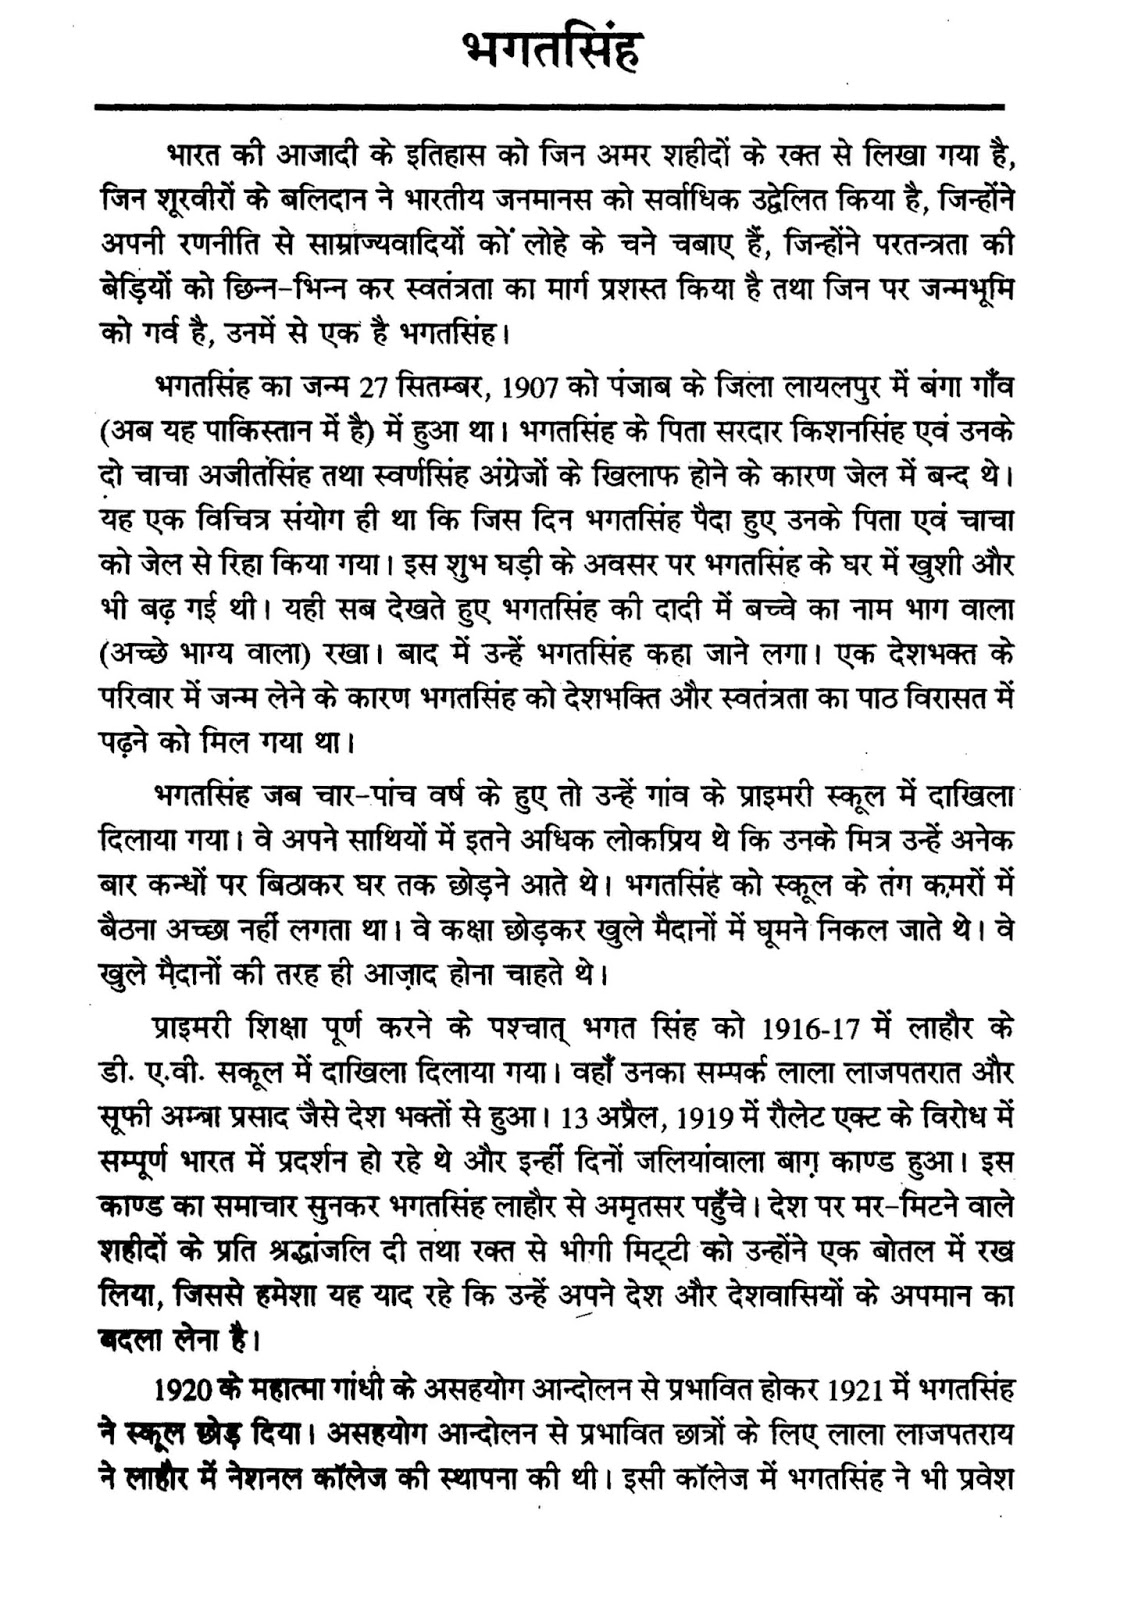 jawaharlal nehru essay in hindi pollution essay in english  hindi essay on bhagat singh essay on bhagat singh in hindi shorts hindi essay bhagat singh